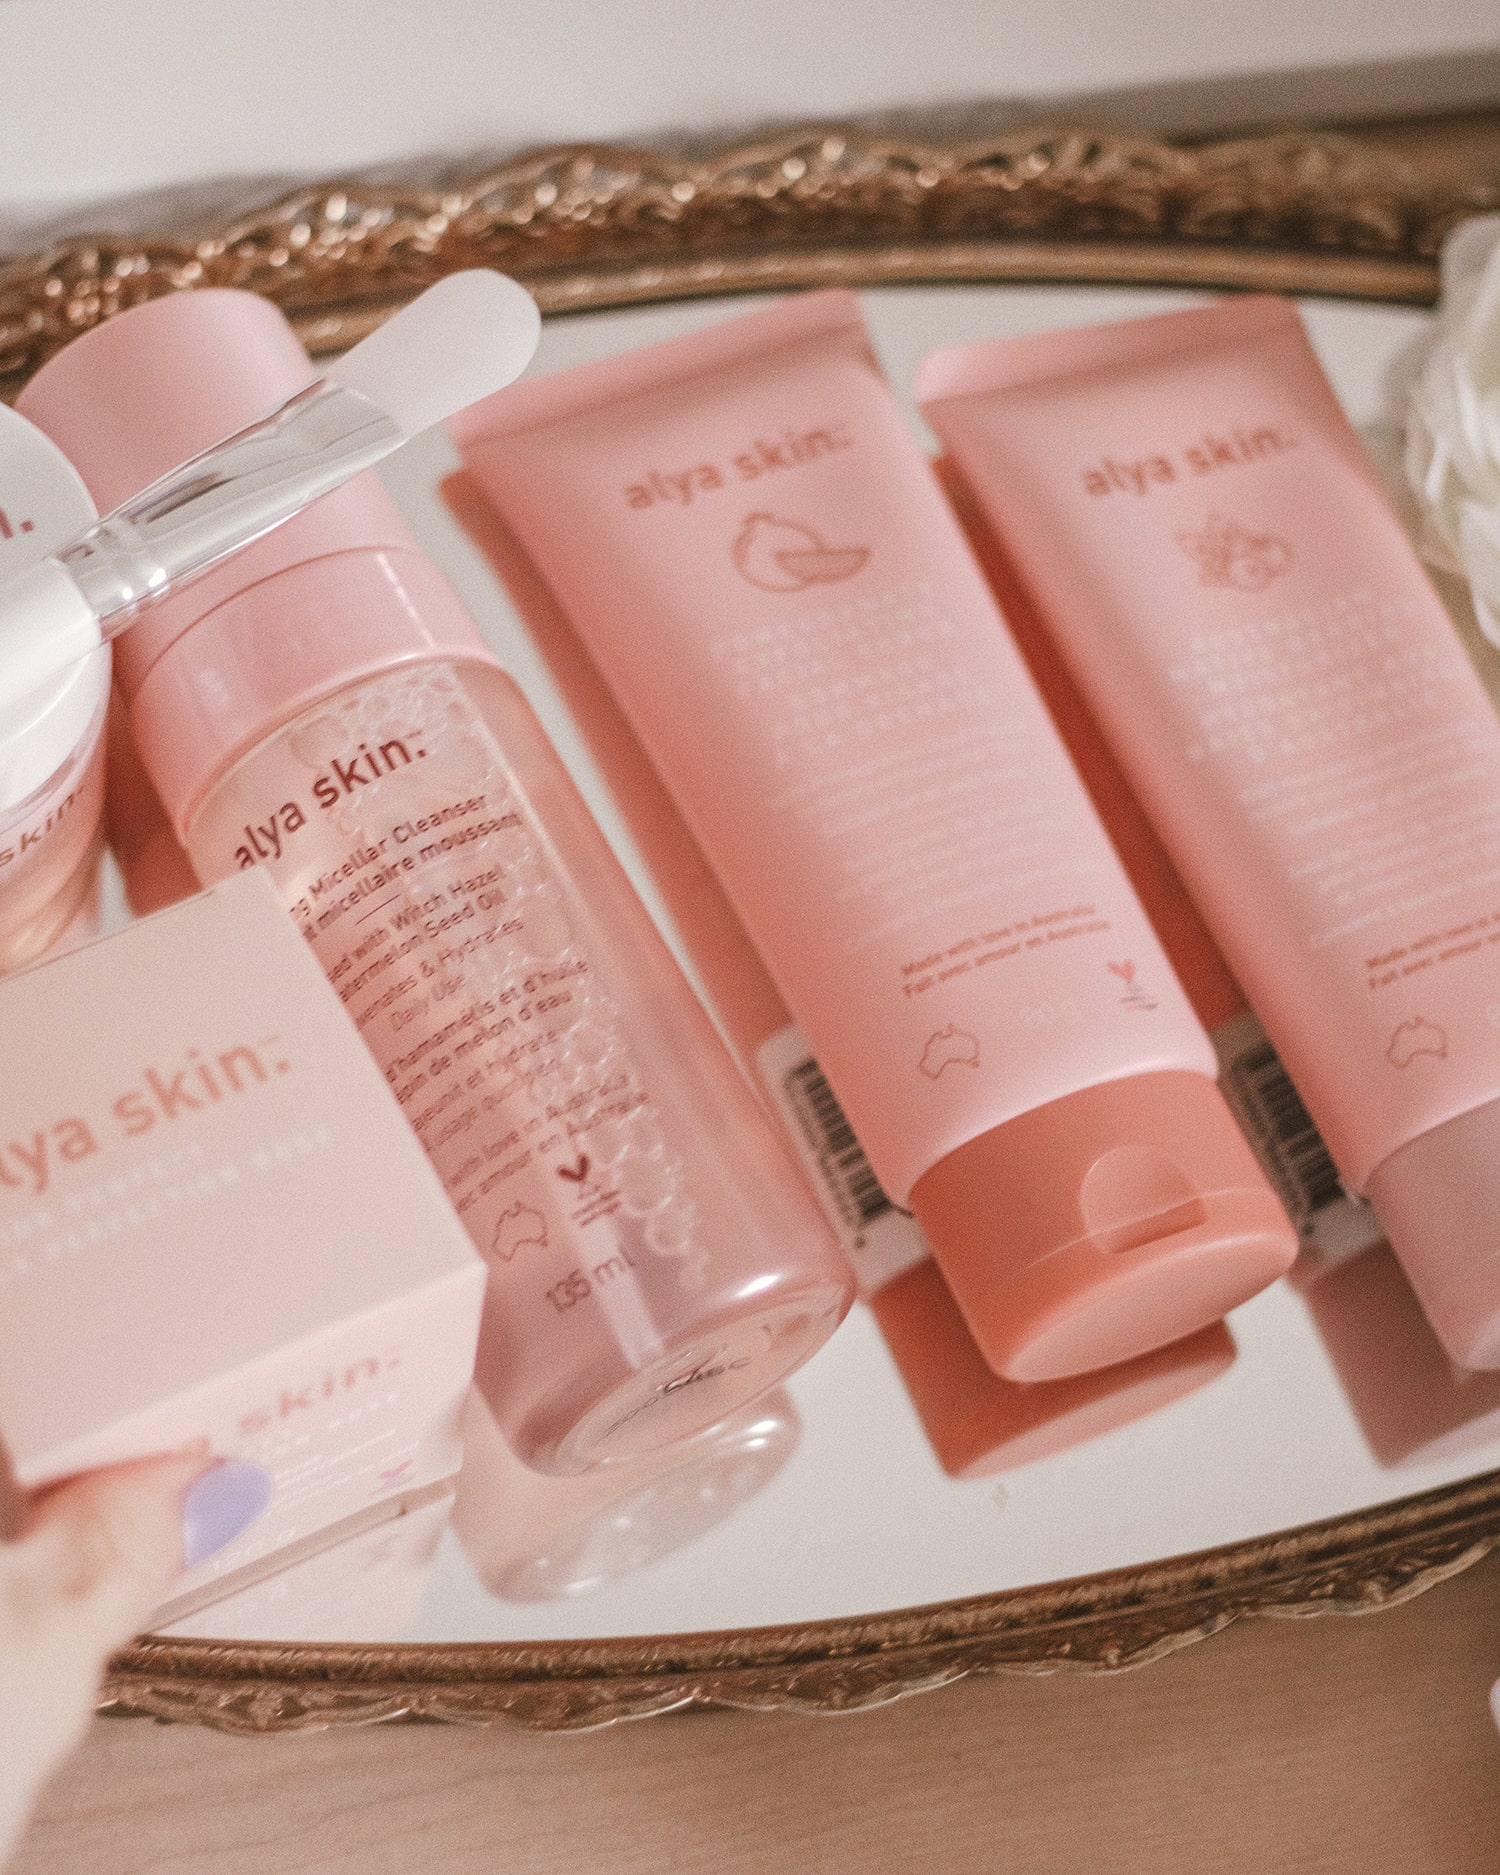 Ayla skin product range review by beauty blogger Nicole Rae